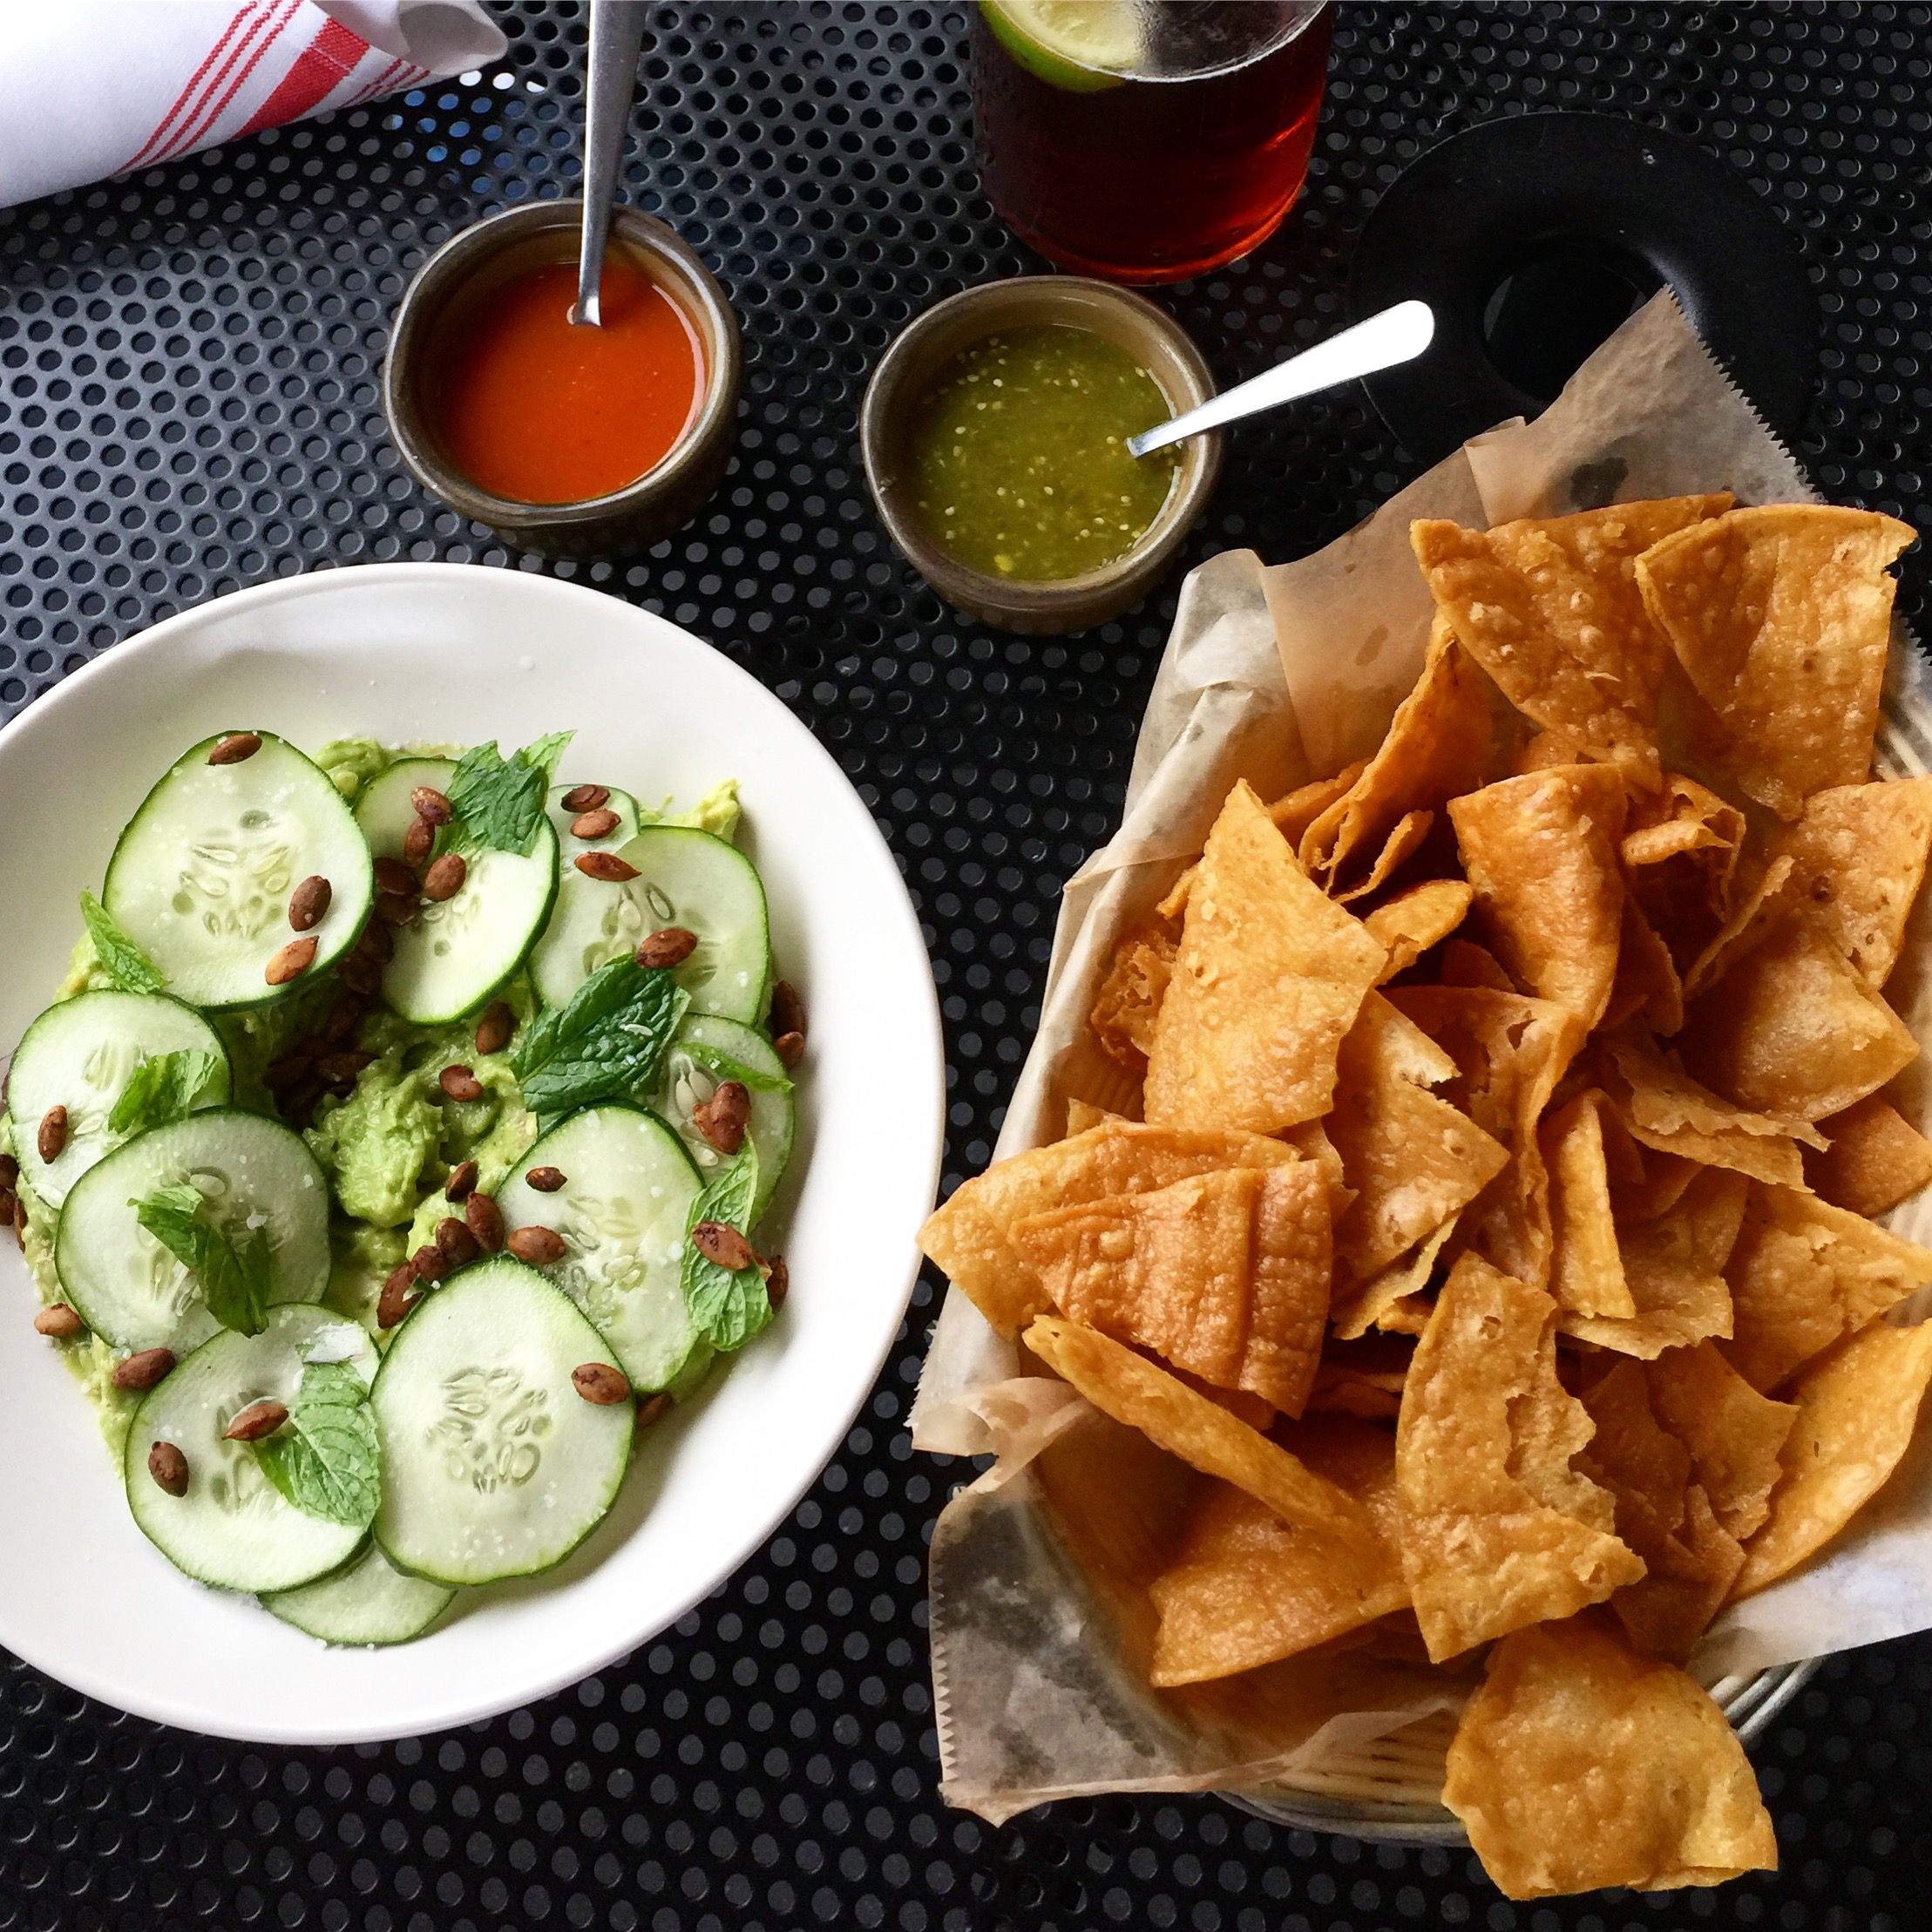 Guacamole at Bajo Sexto Taco Lounge from Spinach Tiger